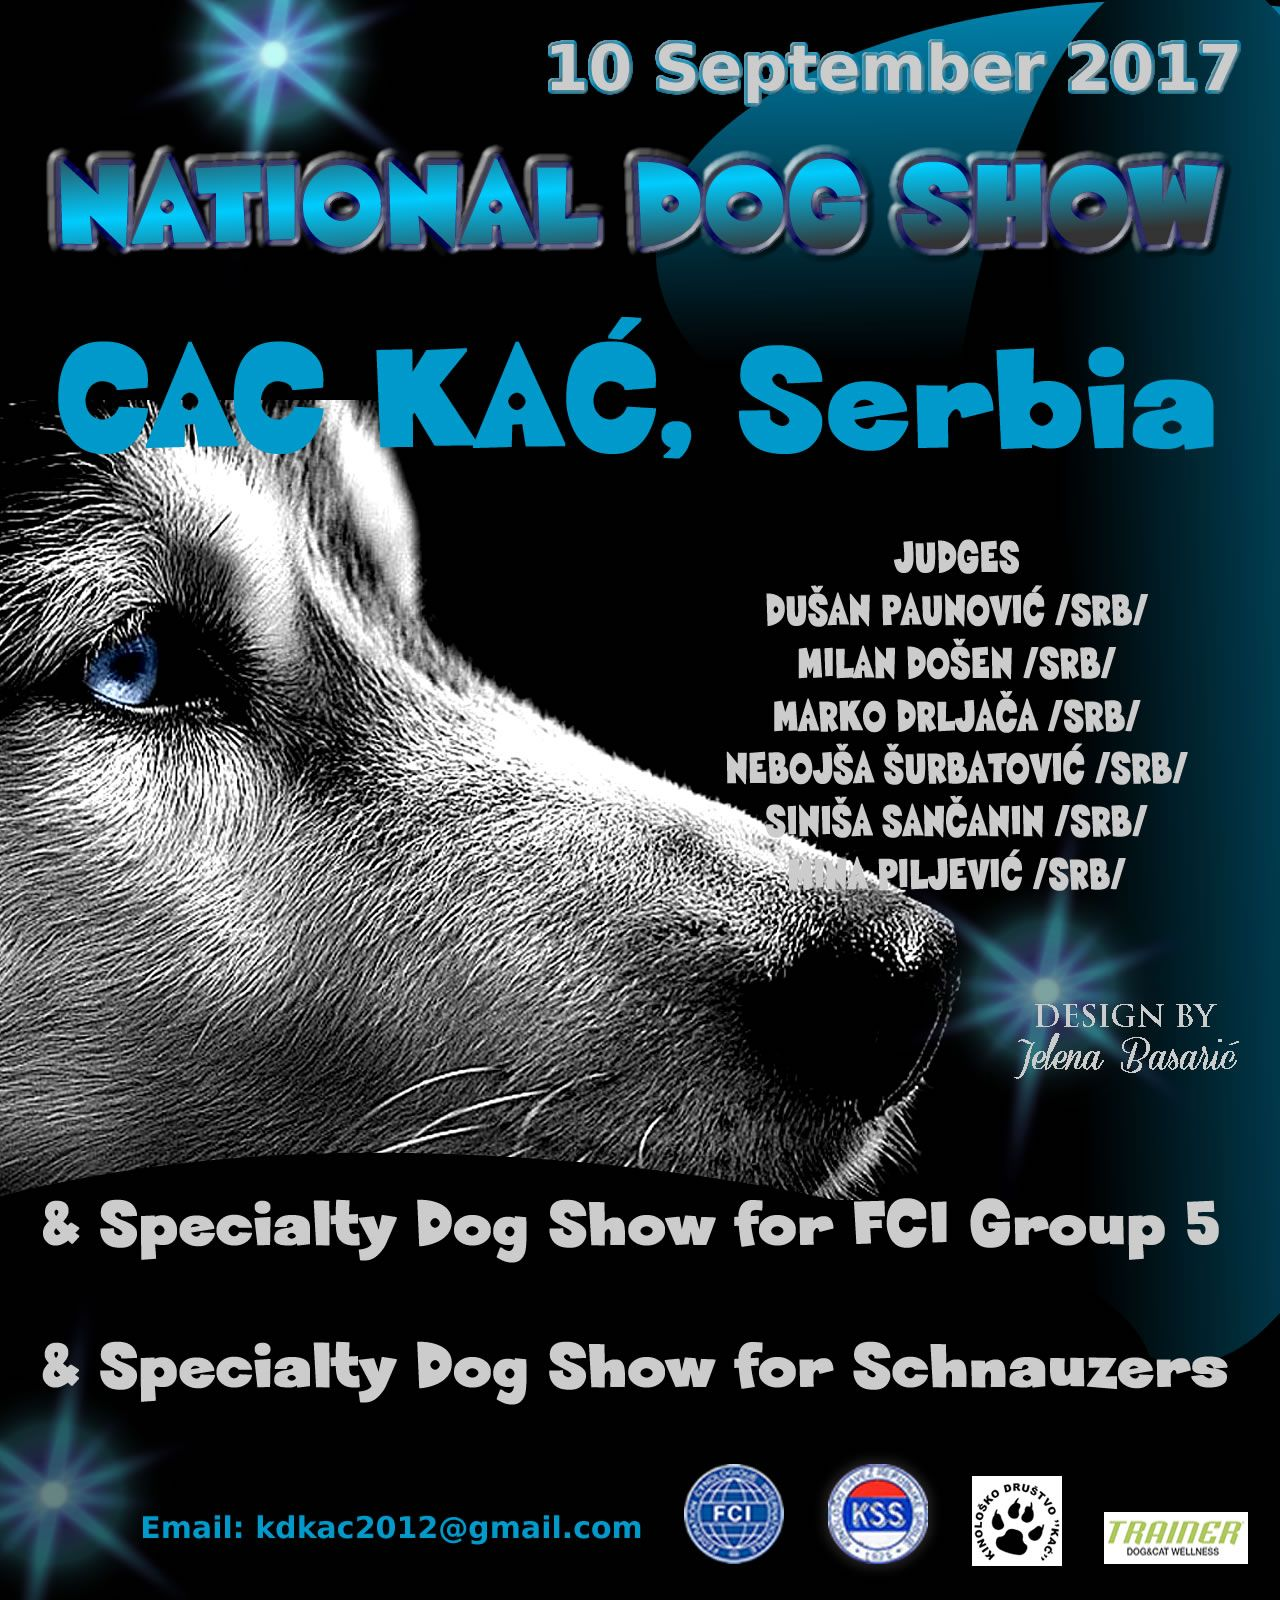 Pin By Jelena Basaric On Dog Shows With Images National Dog